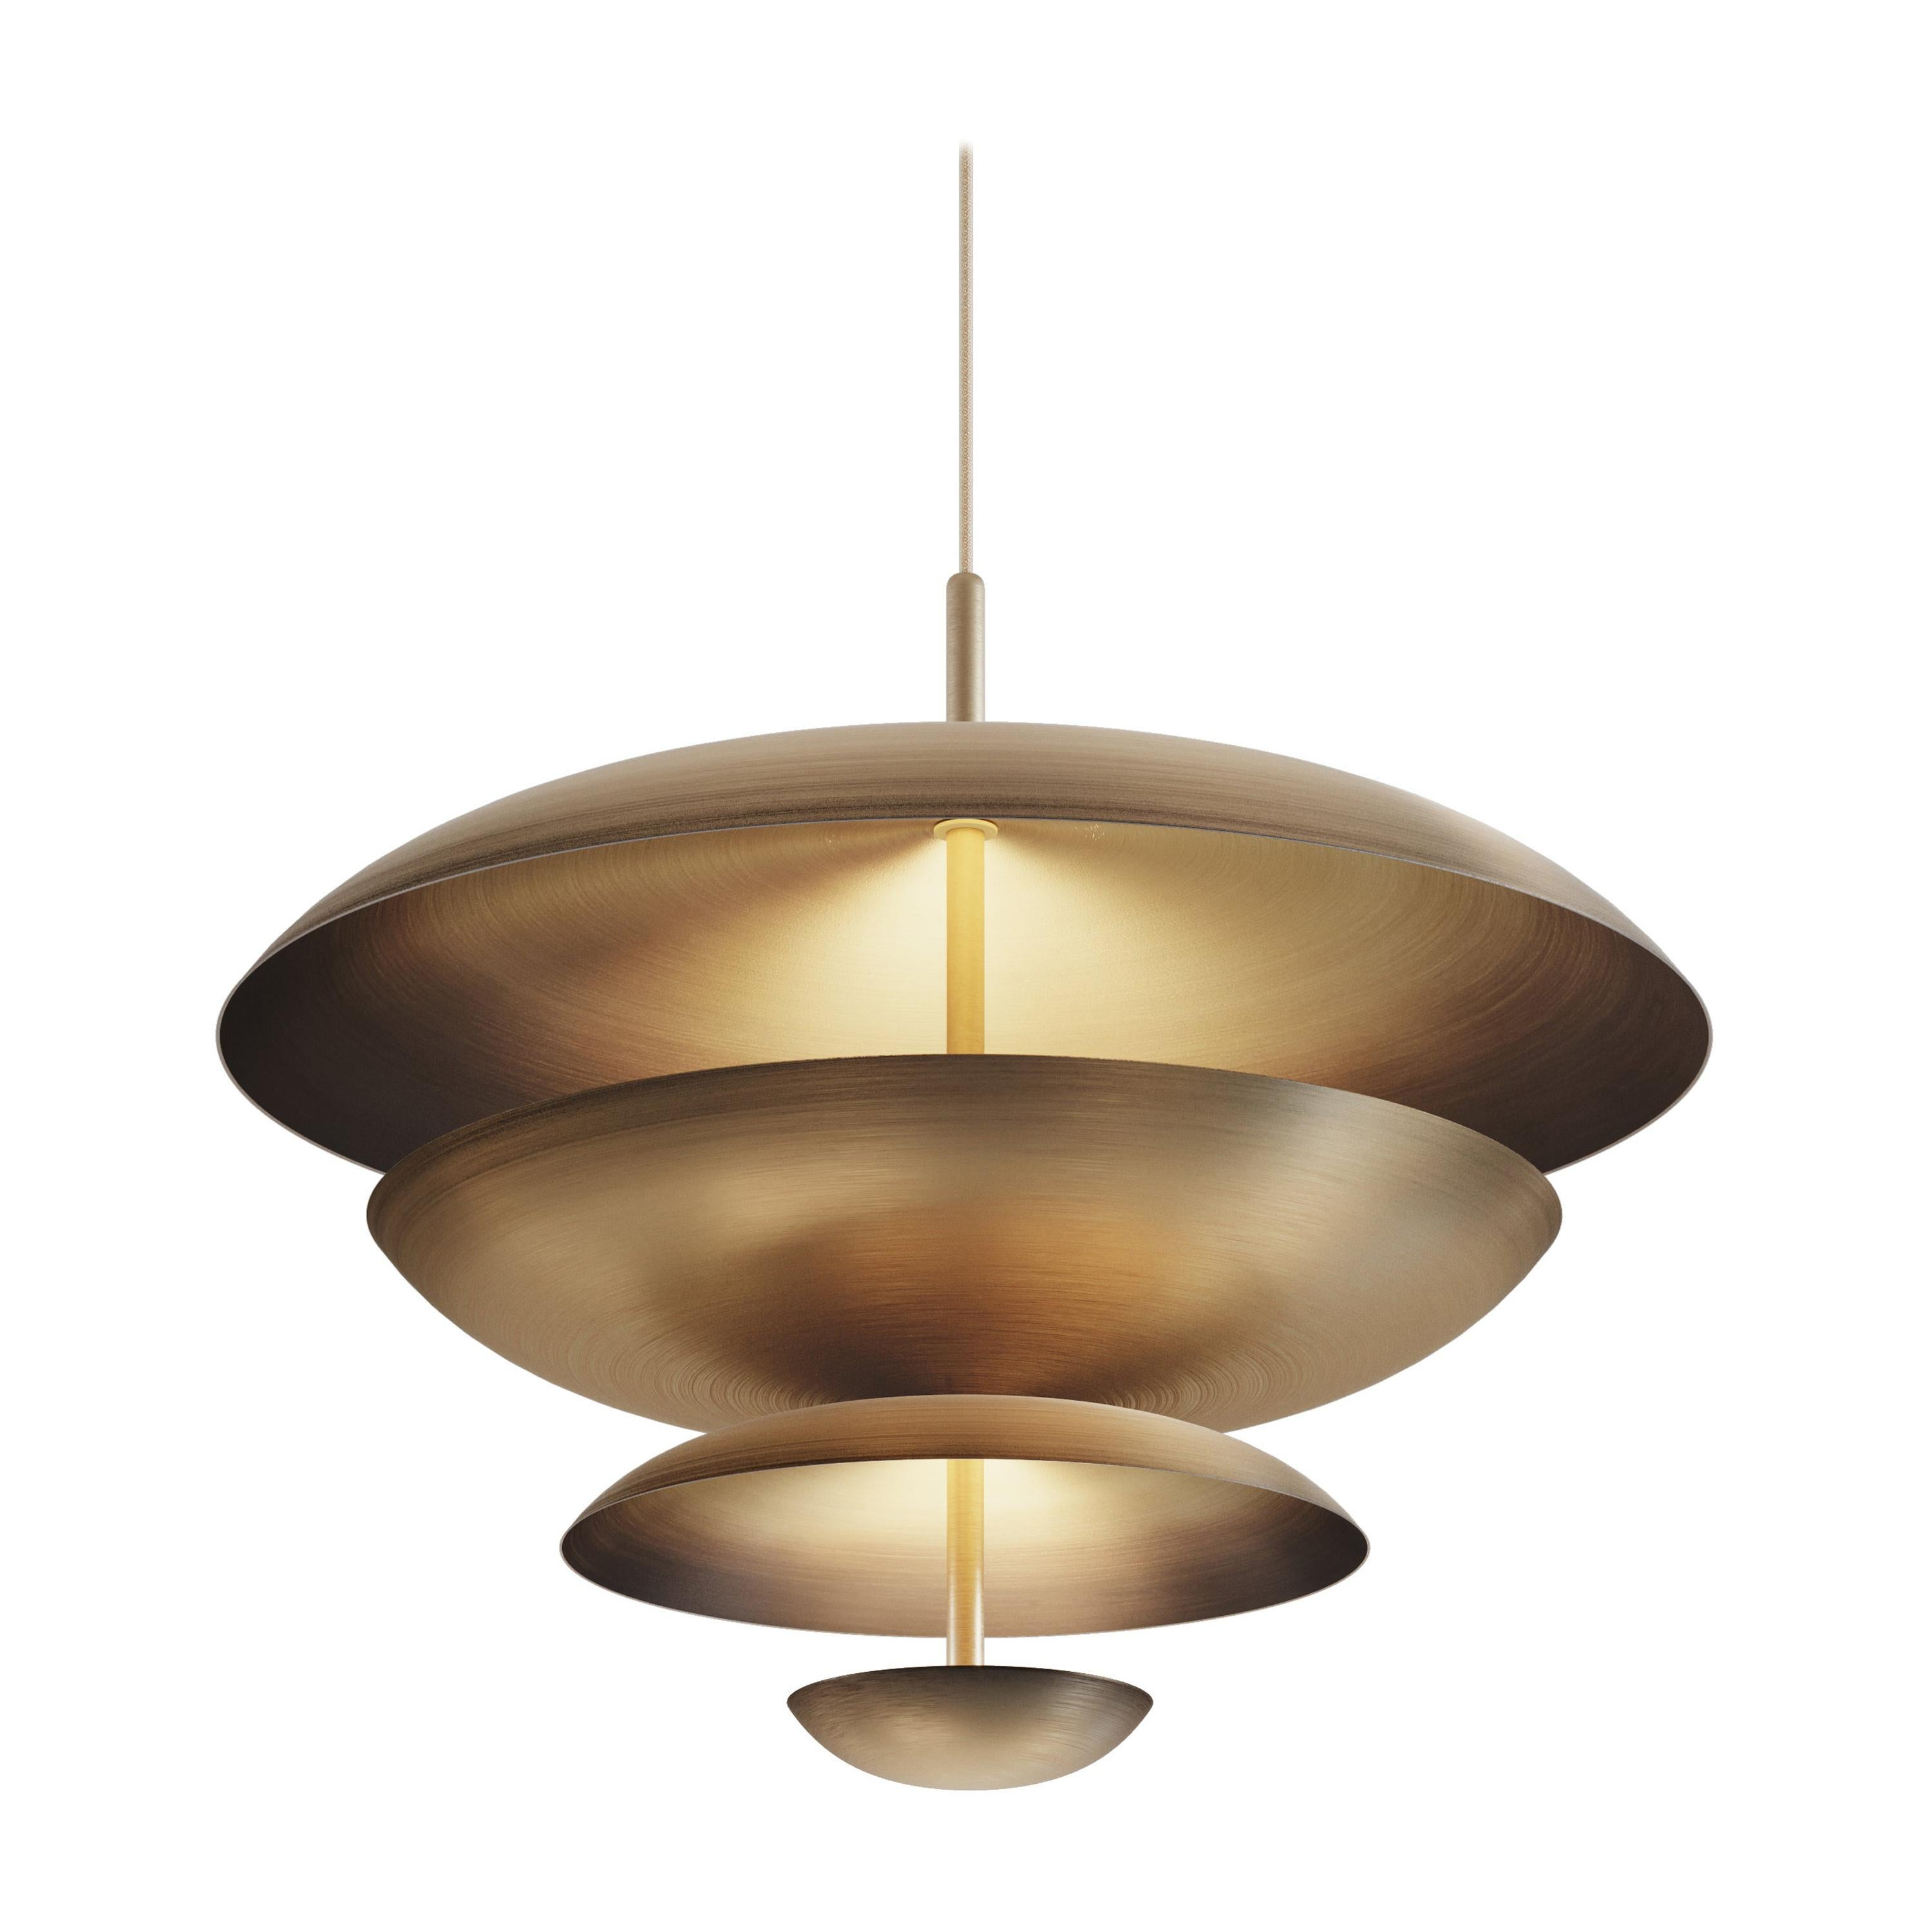 'Cosmic Ore' Chandelier, Gradient Patinated Brass Ceiling Light, Pendant